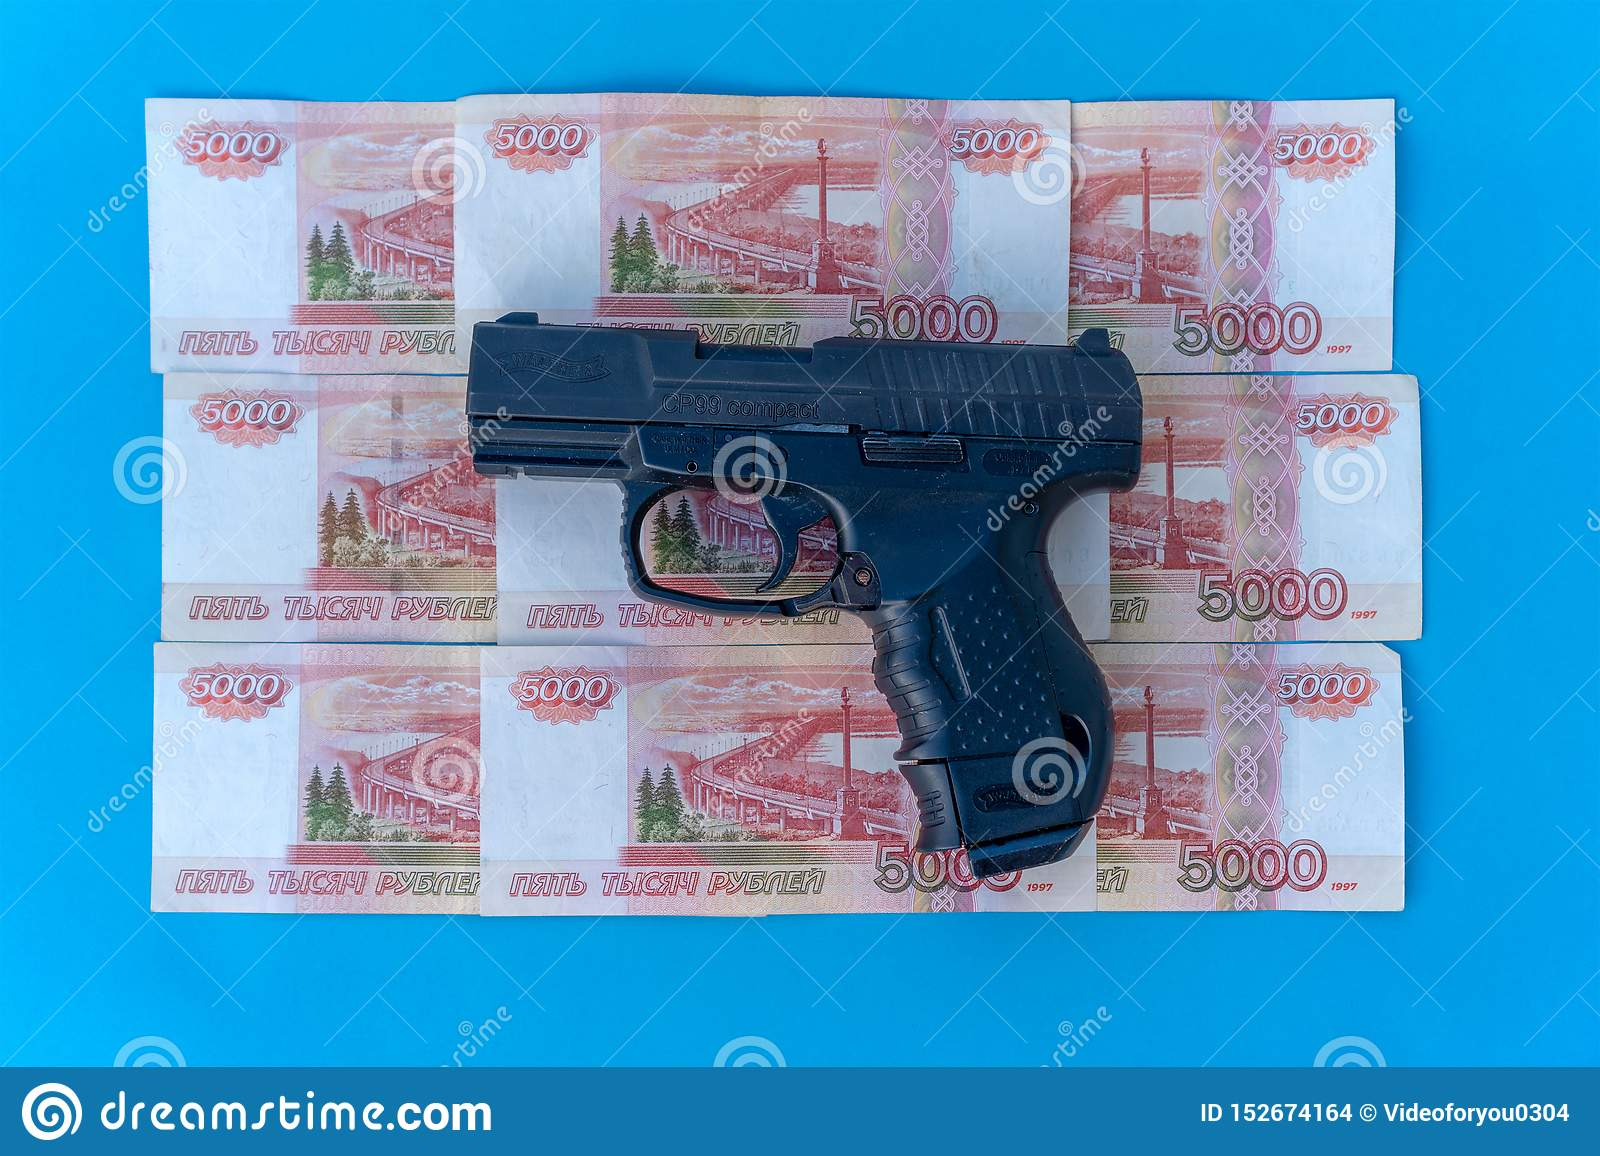 Close up image of pistol and rubles money. Walter and rubles on a blue background close-up